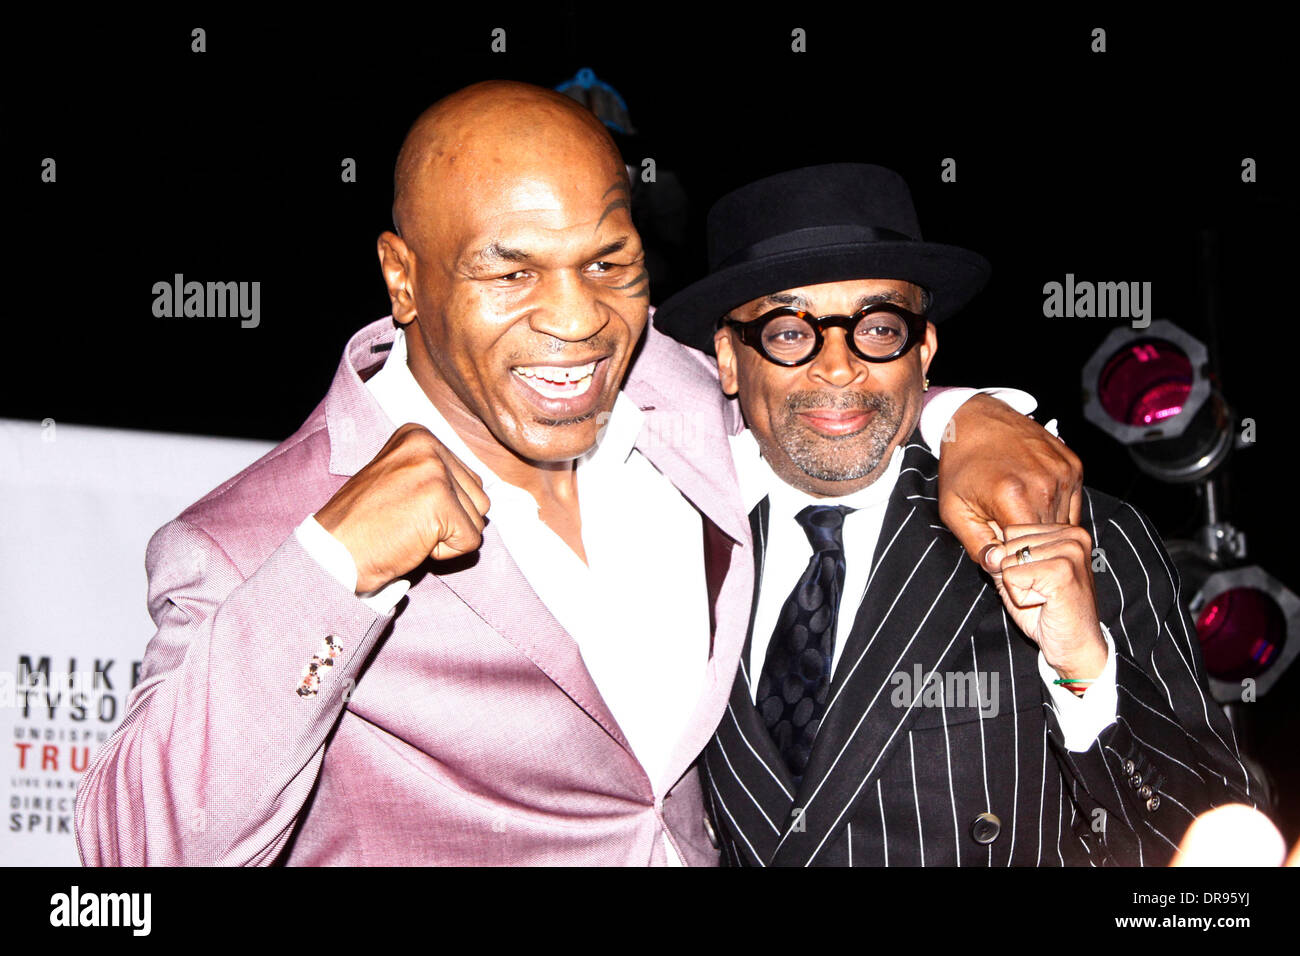 Mike Tyson And Spike Lee Mike Tyson Undisputed Truth Live On Stock Photo Alamy